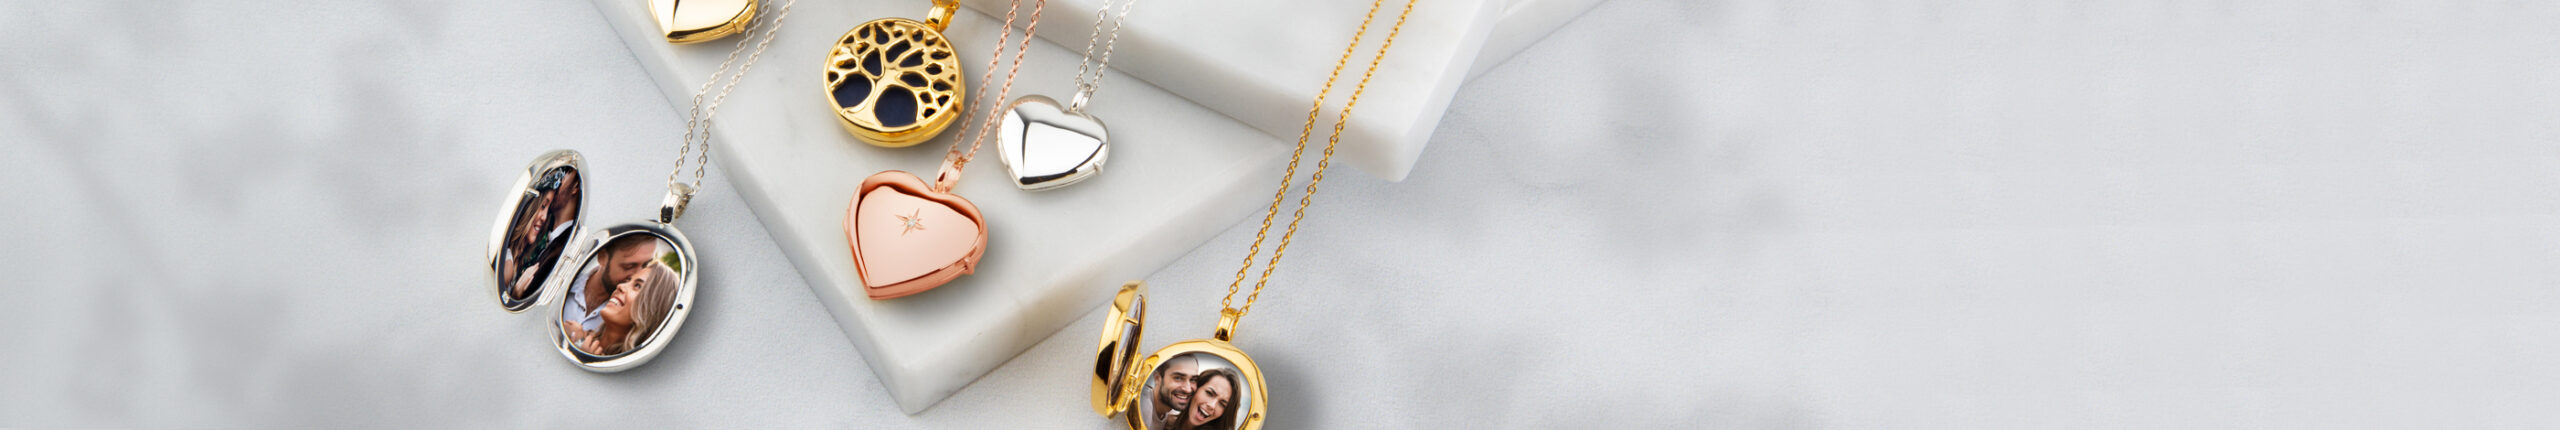 Category image for Personalised Lockets